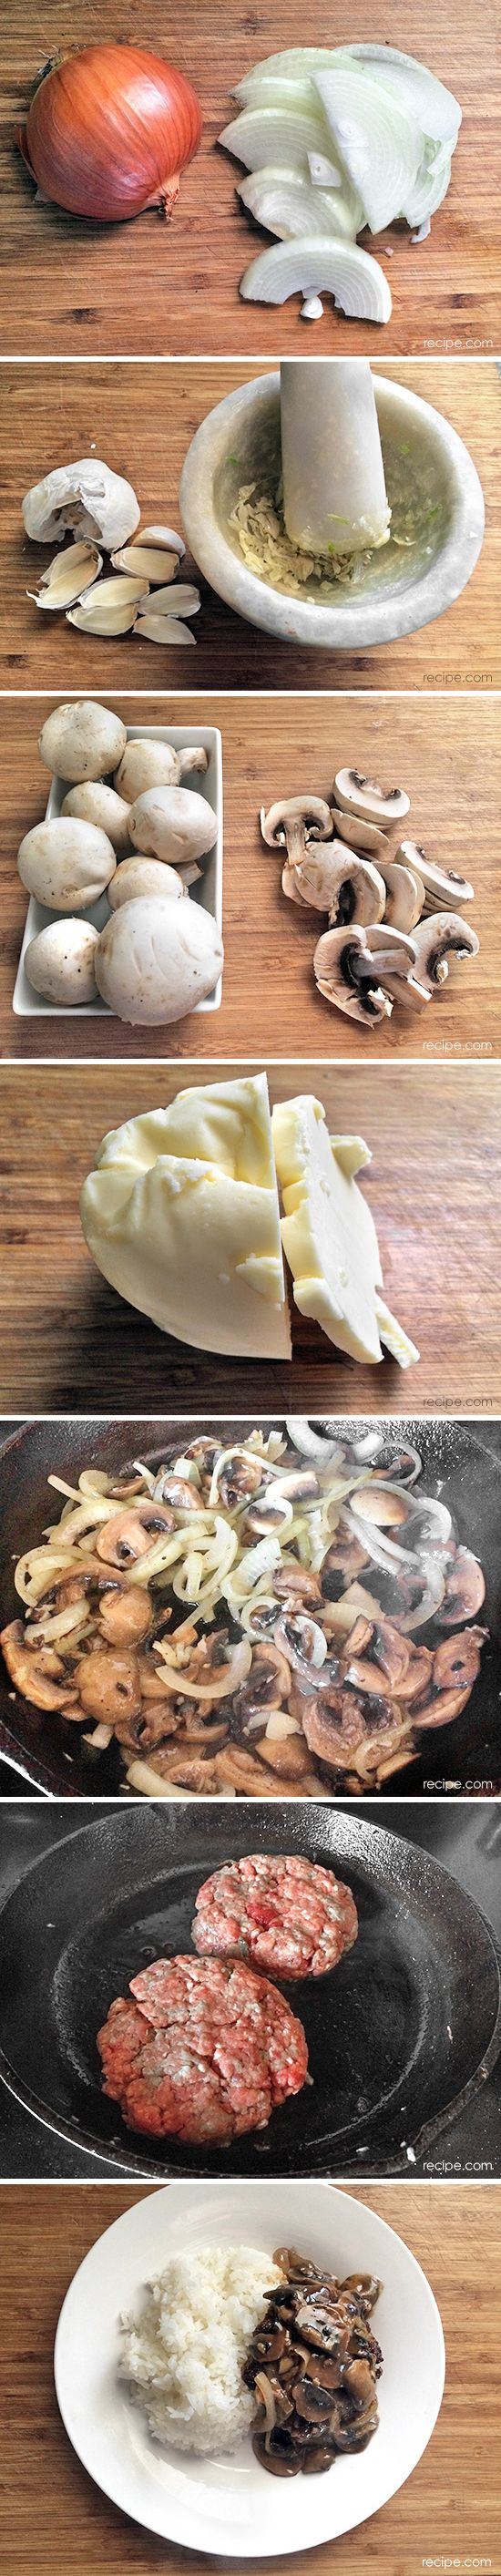 How to Make Beef with Burgundy Mushrooms | Yummy Food | Pinterest